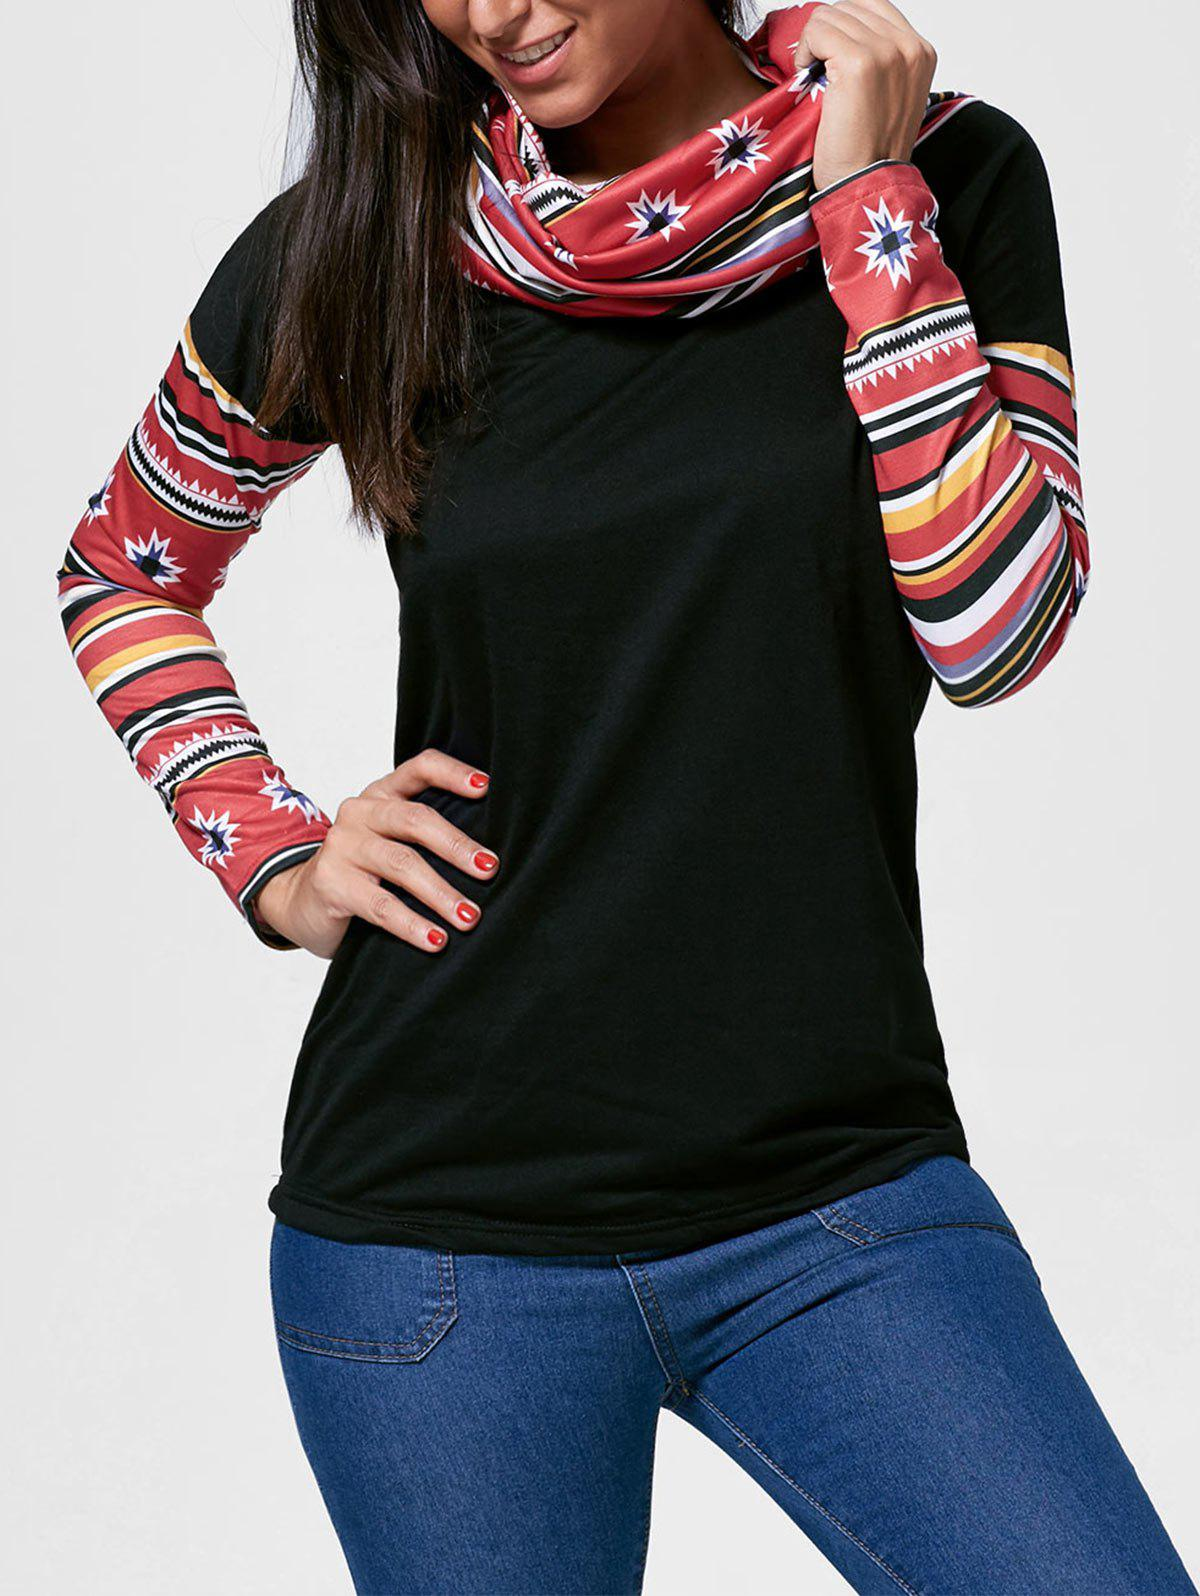 New Vintage Cowl Neck Printed Long Sleeve T-Shirt For Women